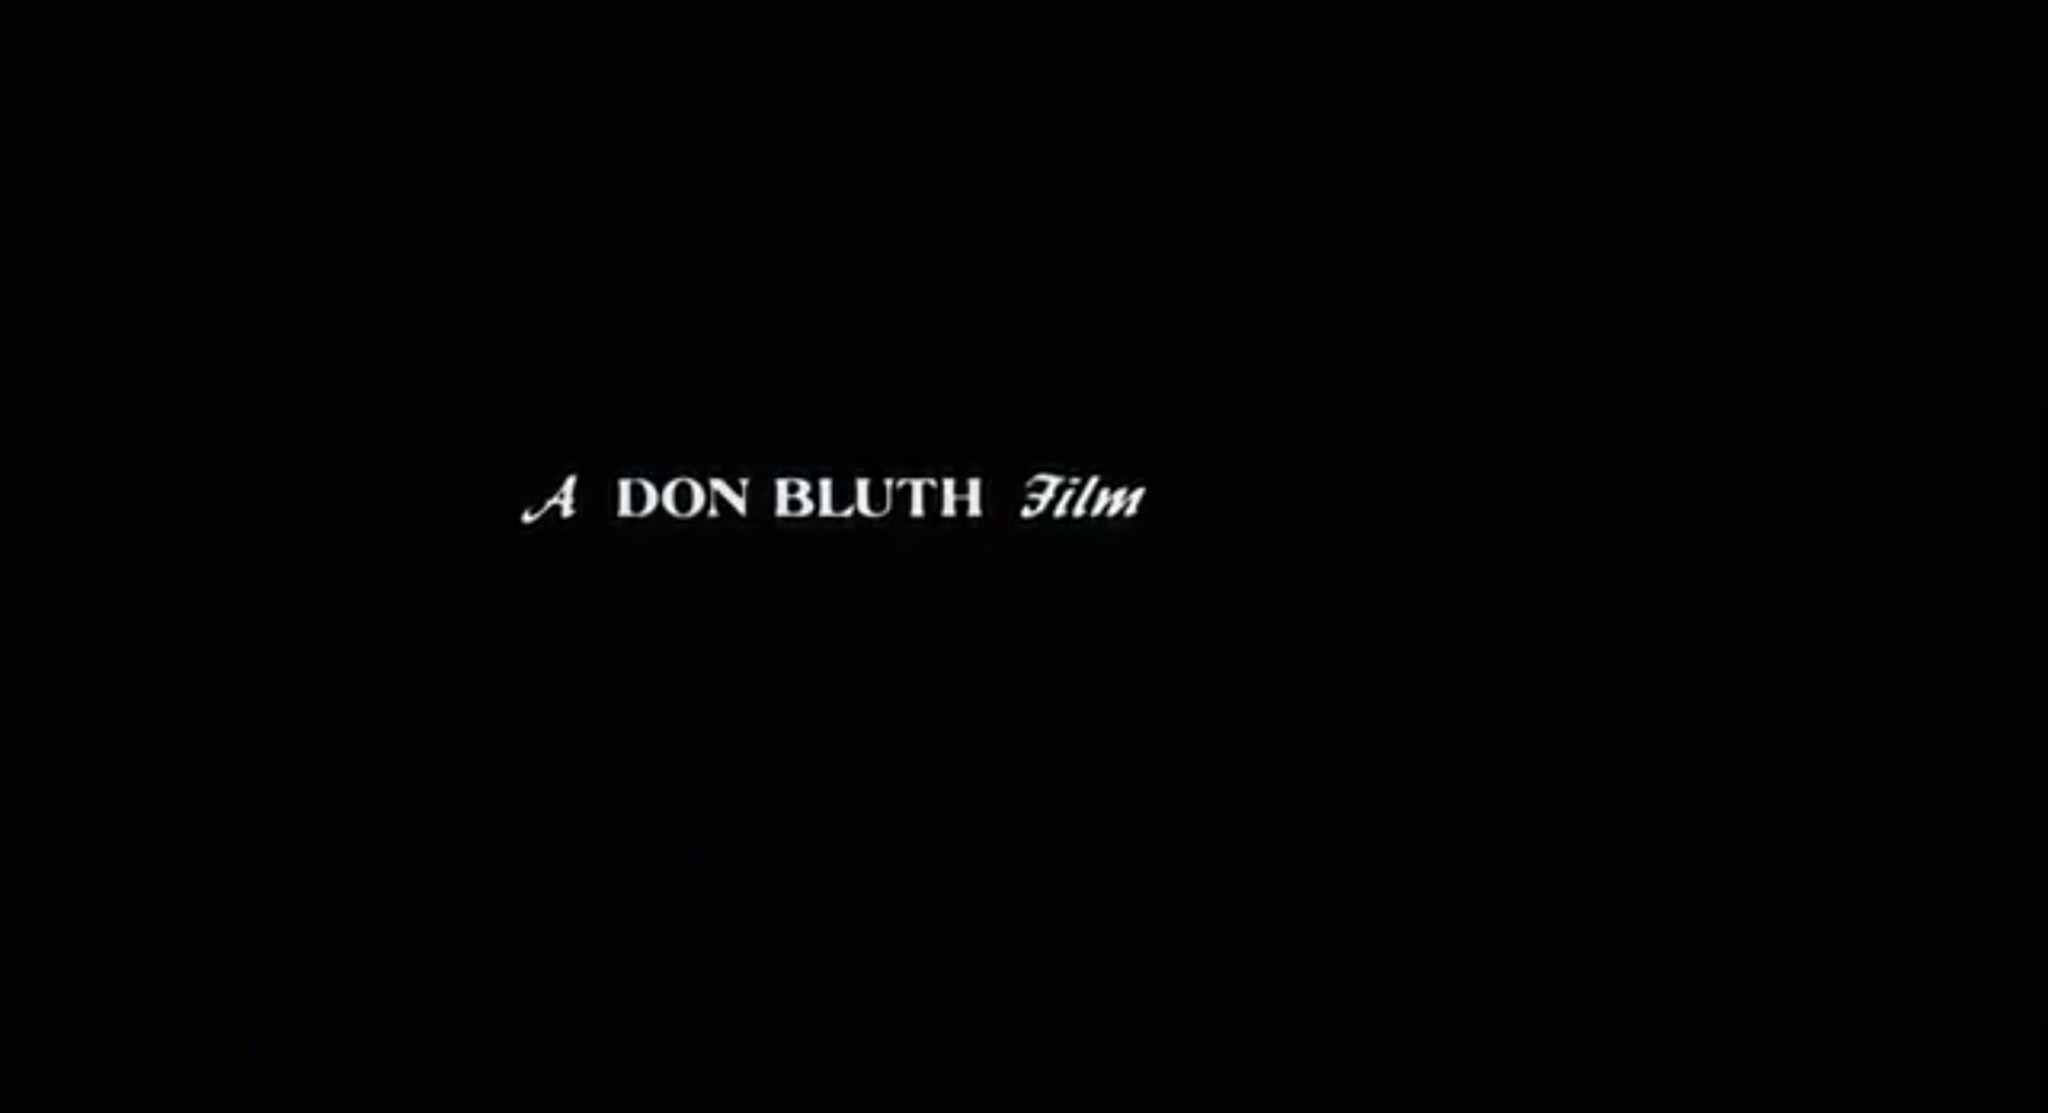 Don Bluth Entertainment